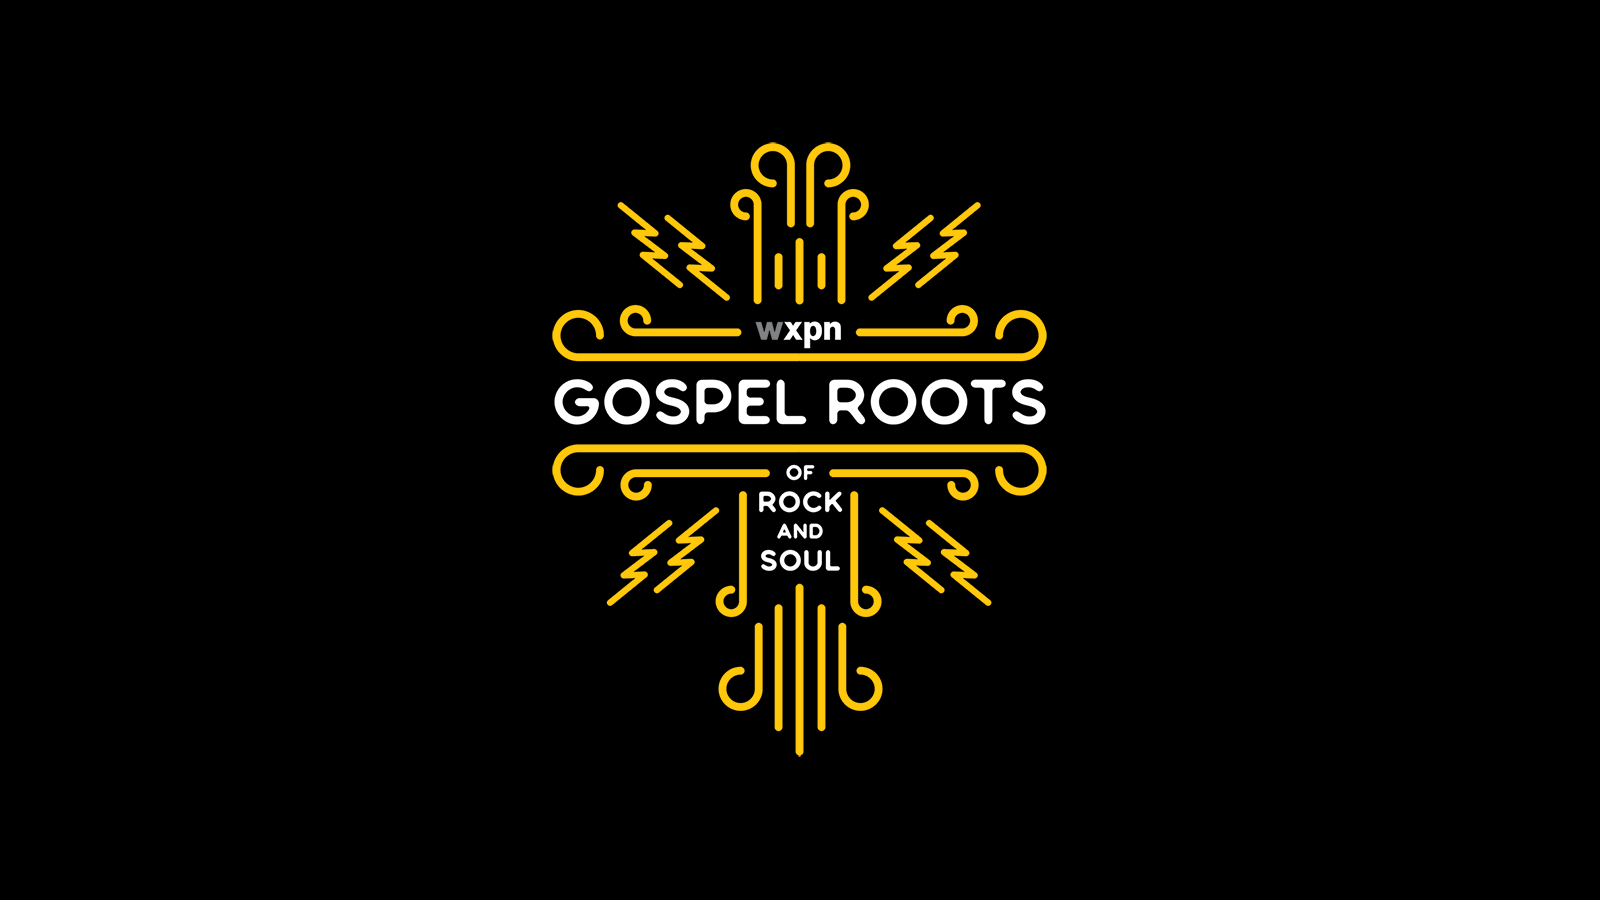 Gospel Roots of Rock and Soul hero